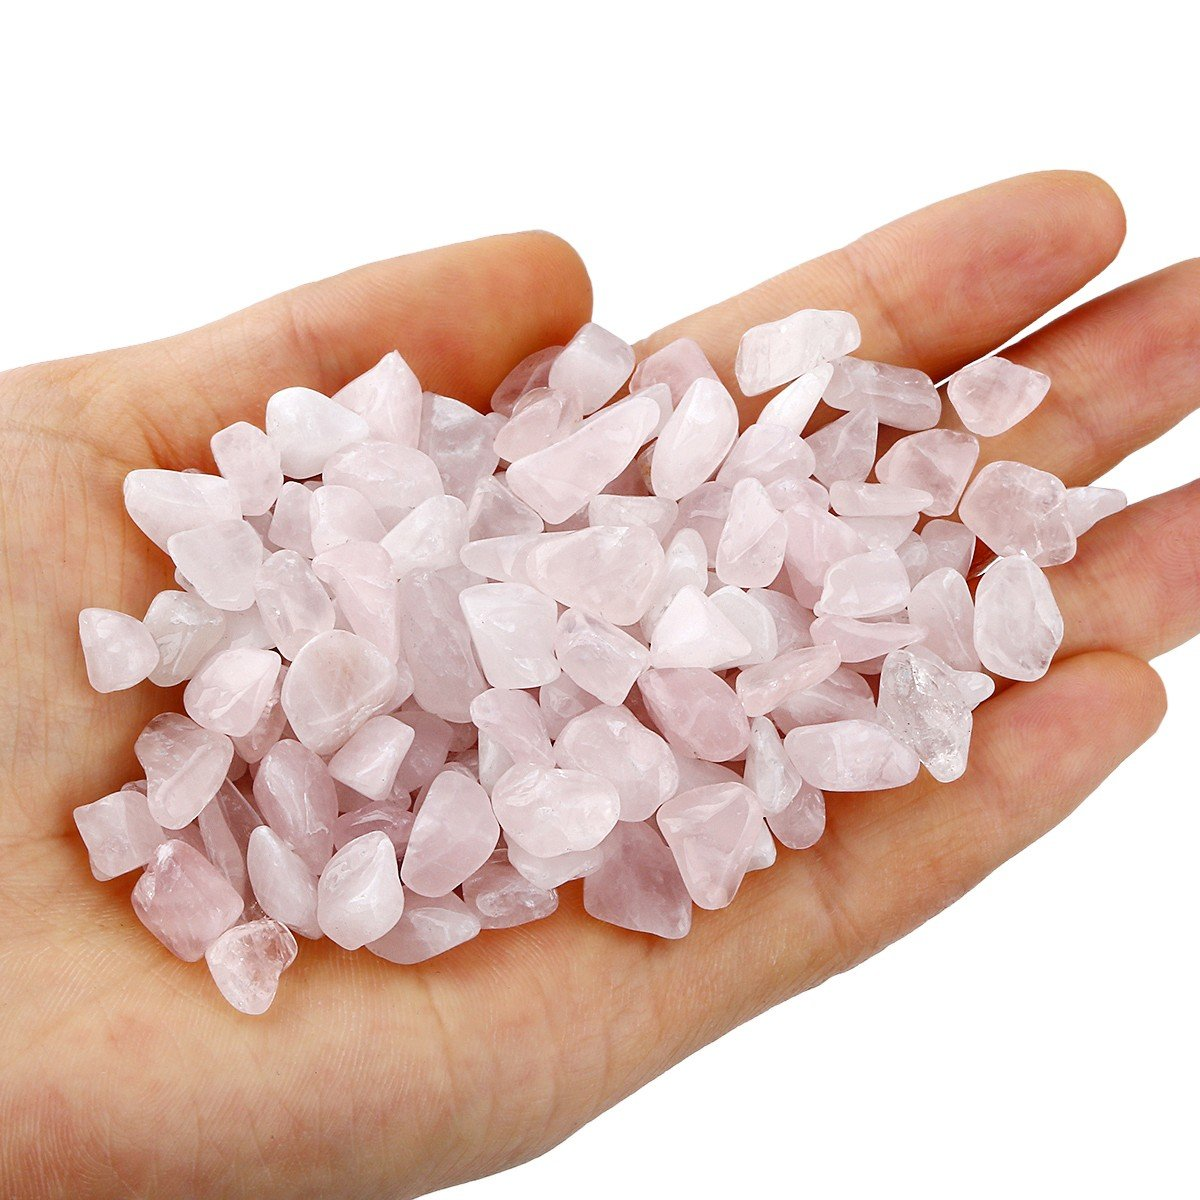 1 pound,about 460 gram Shanxing Tumbled Chips Stones,Crushed Stone Tumblestone Crystals Healing Home Decoration,Amethyst